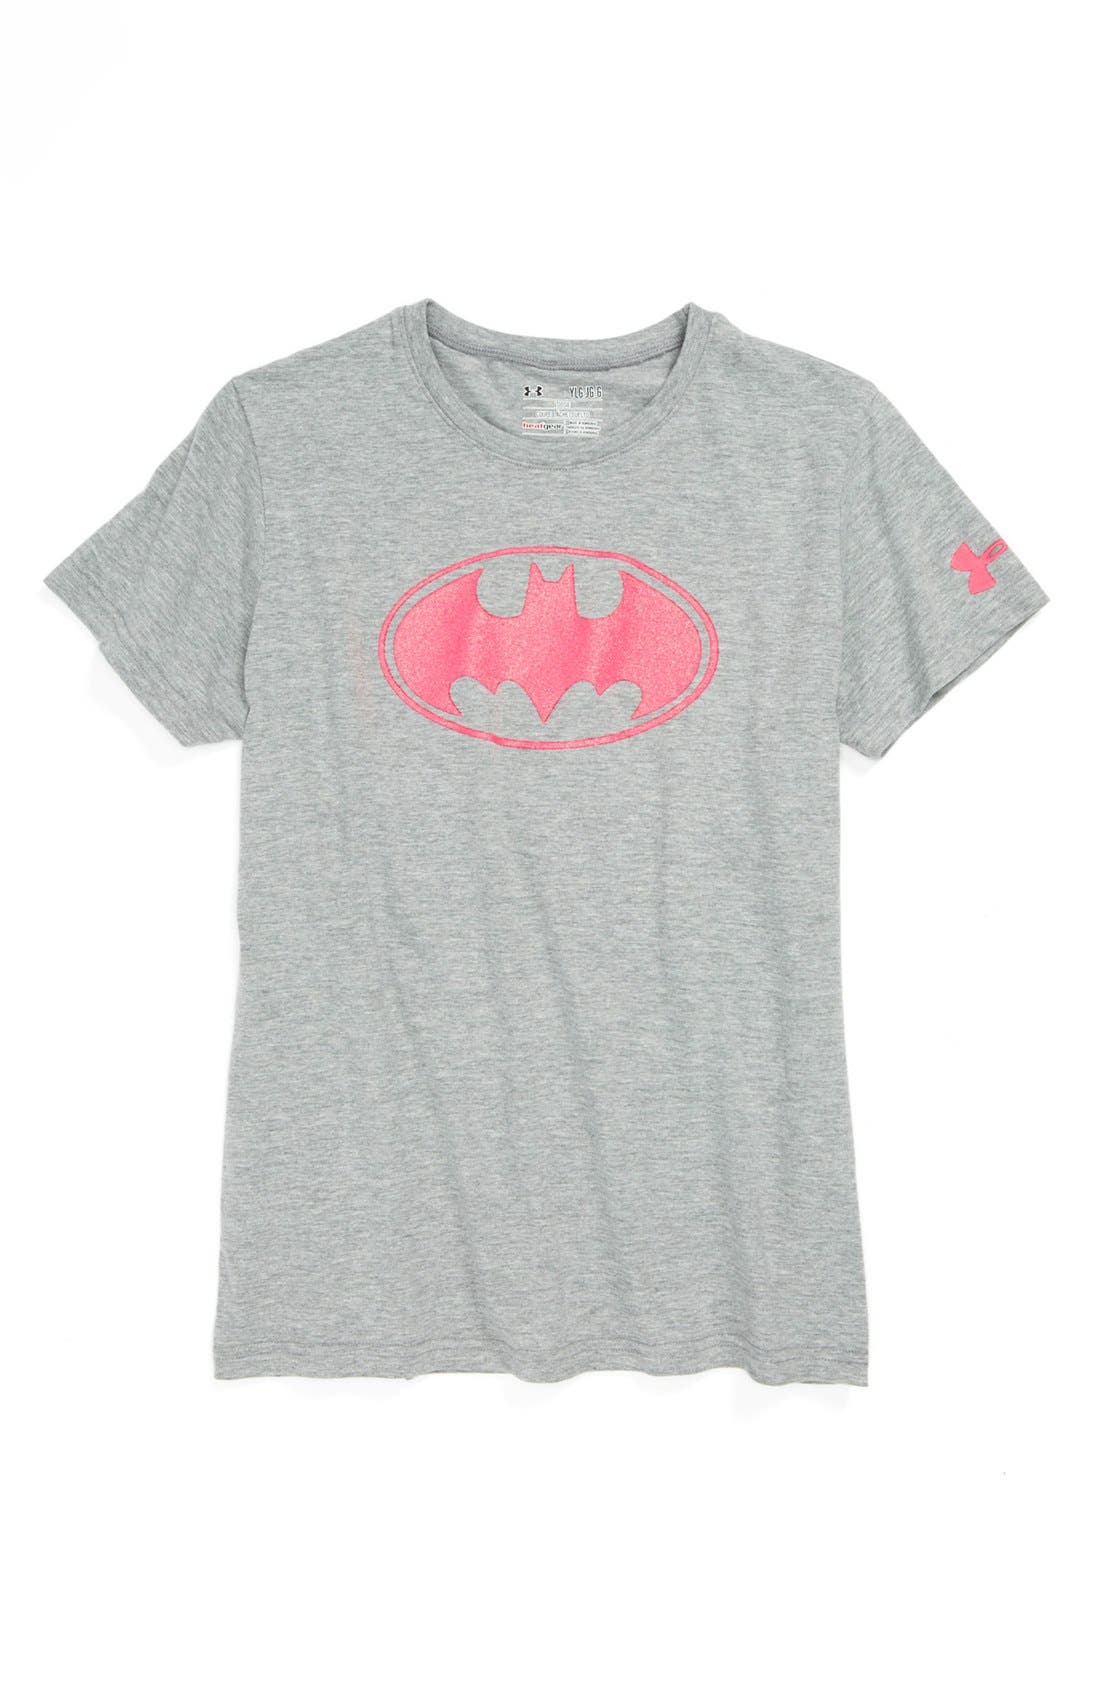 Alternate Image 1 Selected - Under Armour 'Batman' Charged Cotton® Tee (Little Girls & Big Girls)